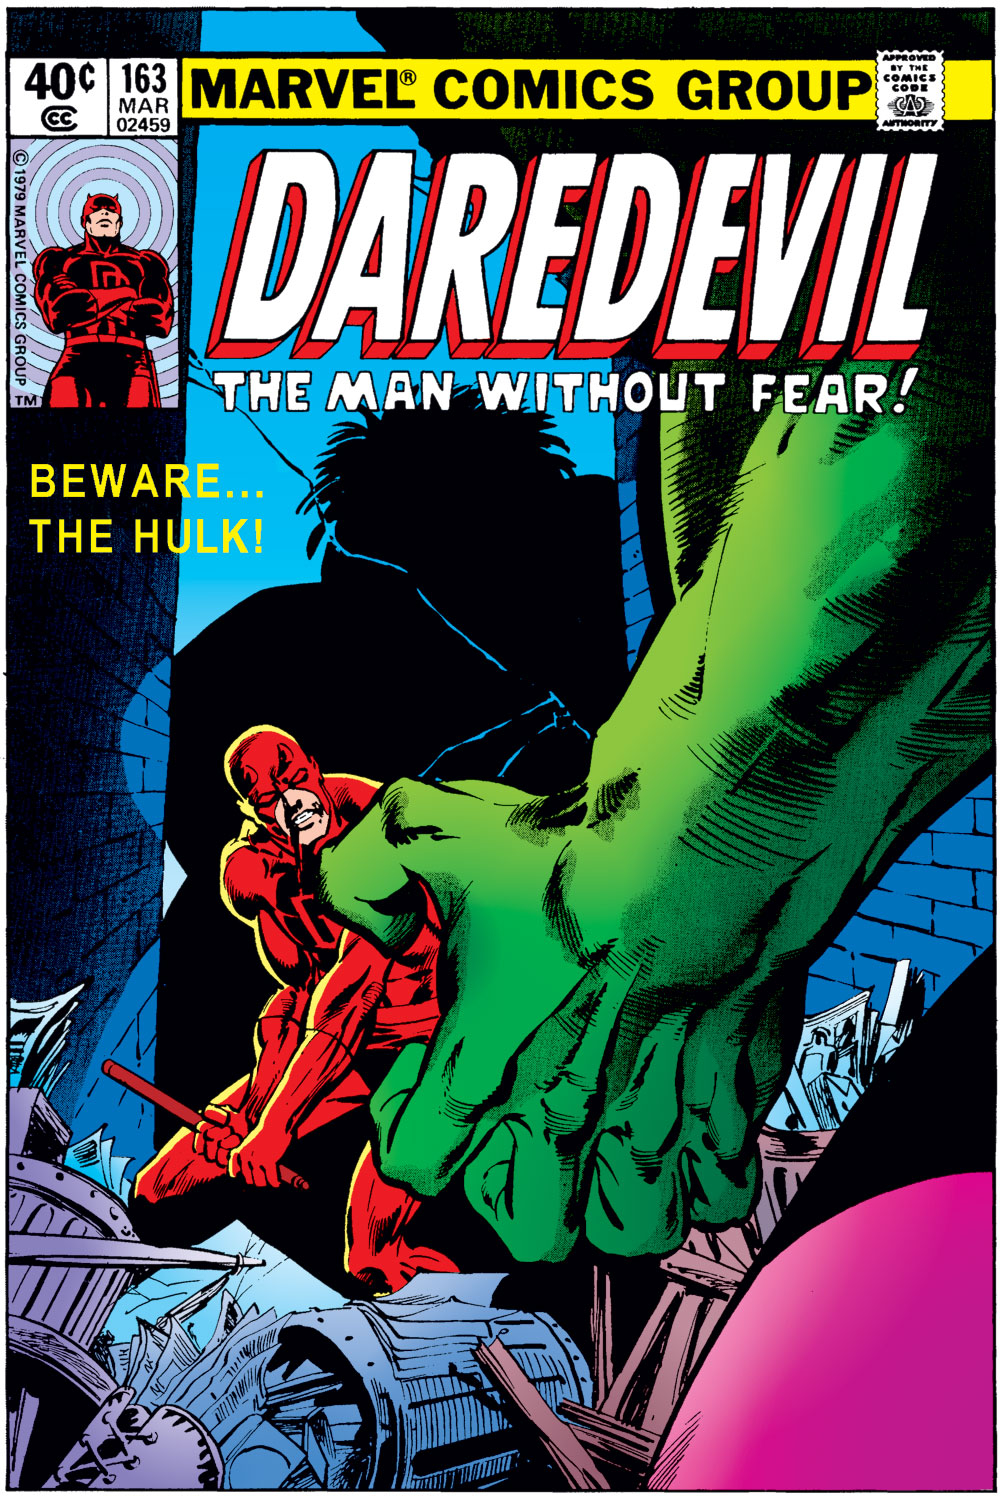 Daredevil (1963-1998) issue 163 - Page 1